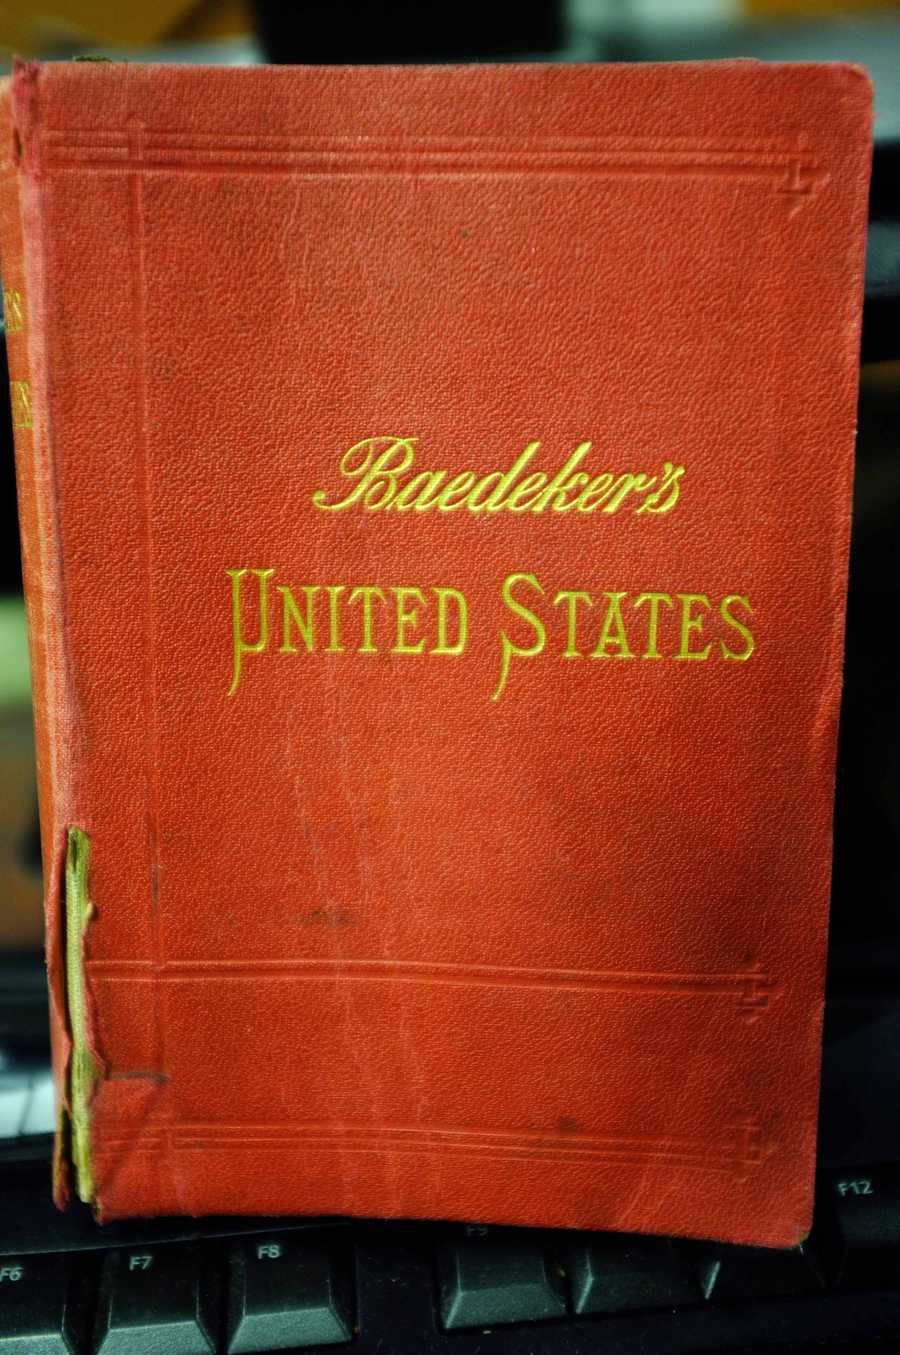 Eight different Baedeker's in the family have been responsible for the guides, the first of which was published in the 1850s. The first U.S. edition was printed in 1893.